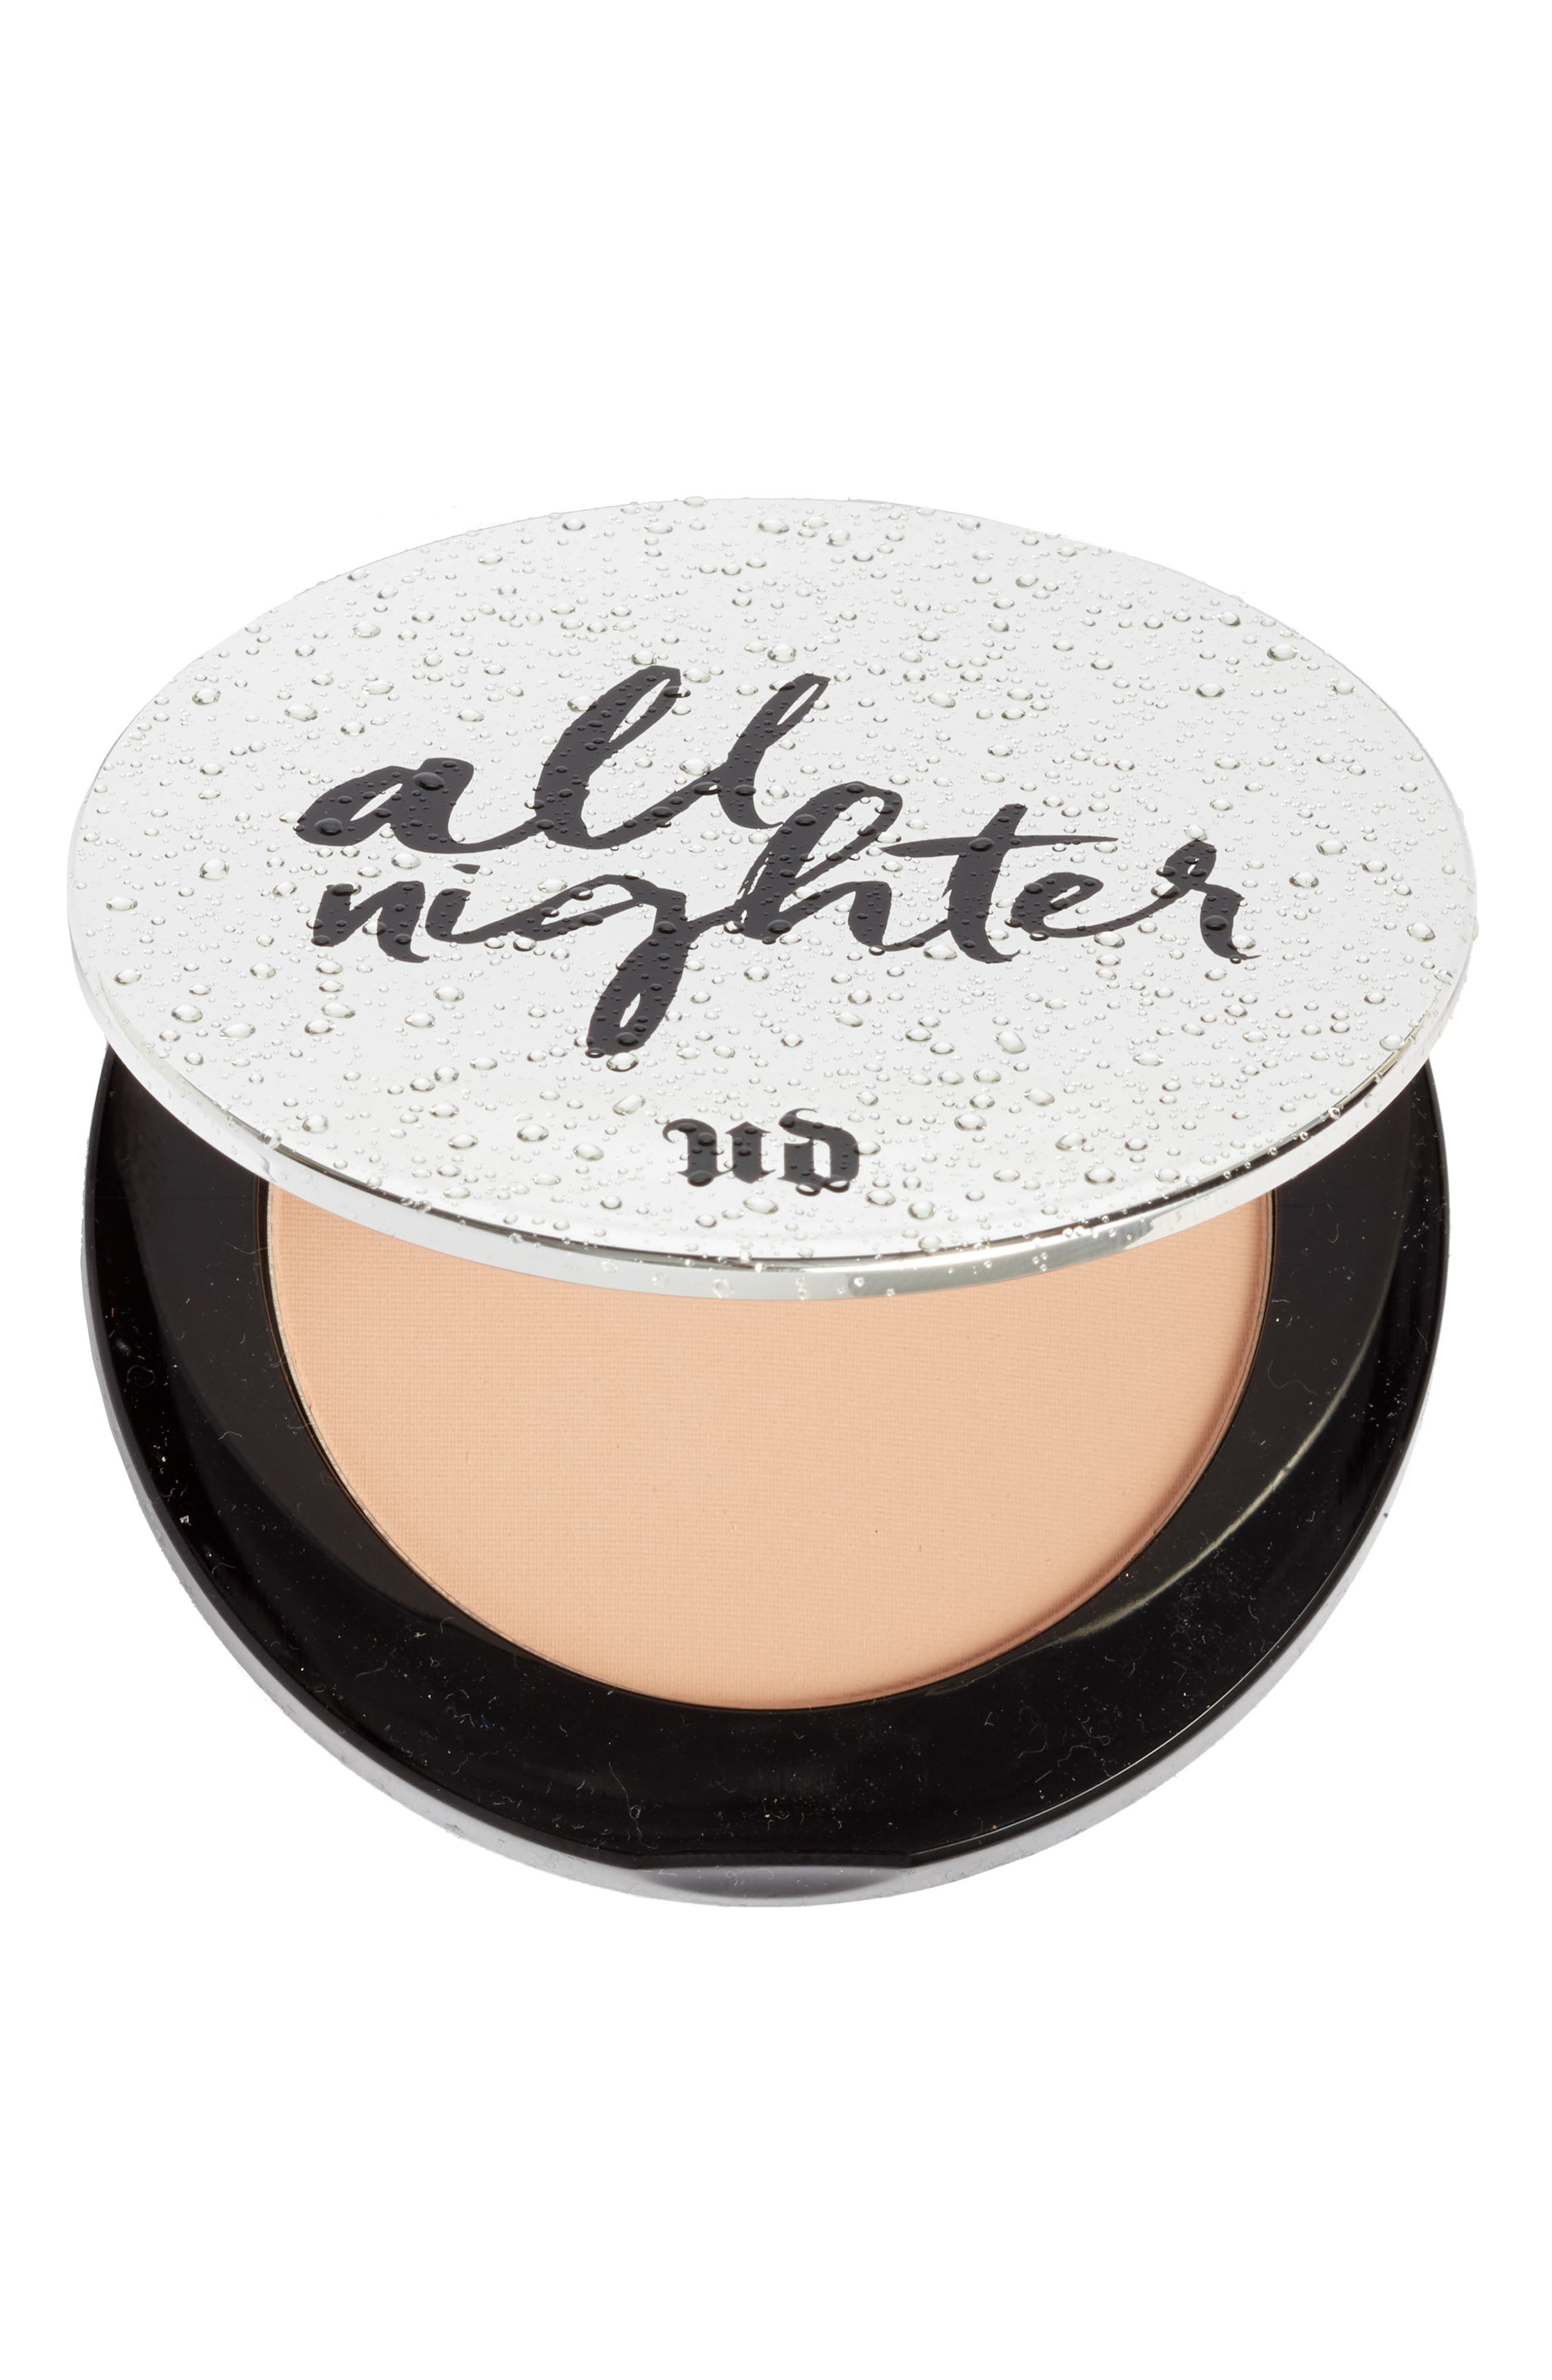 All Nighter Waterproof Setting Powder,                         Main,                         color, No Color